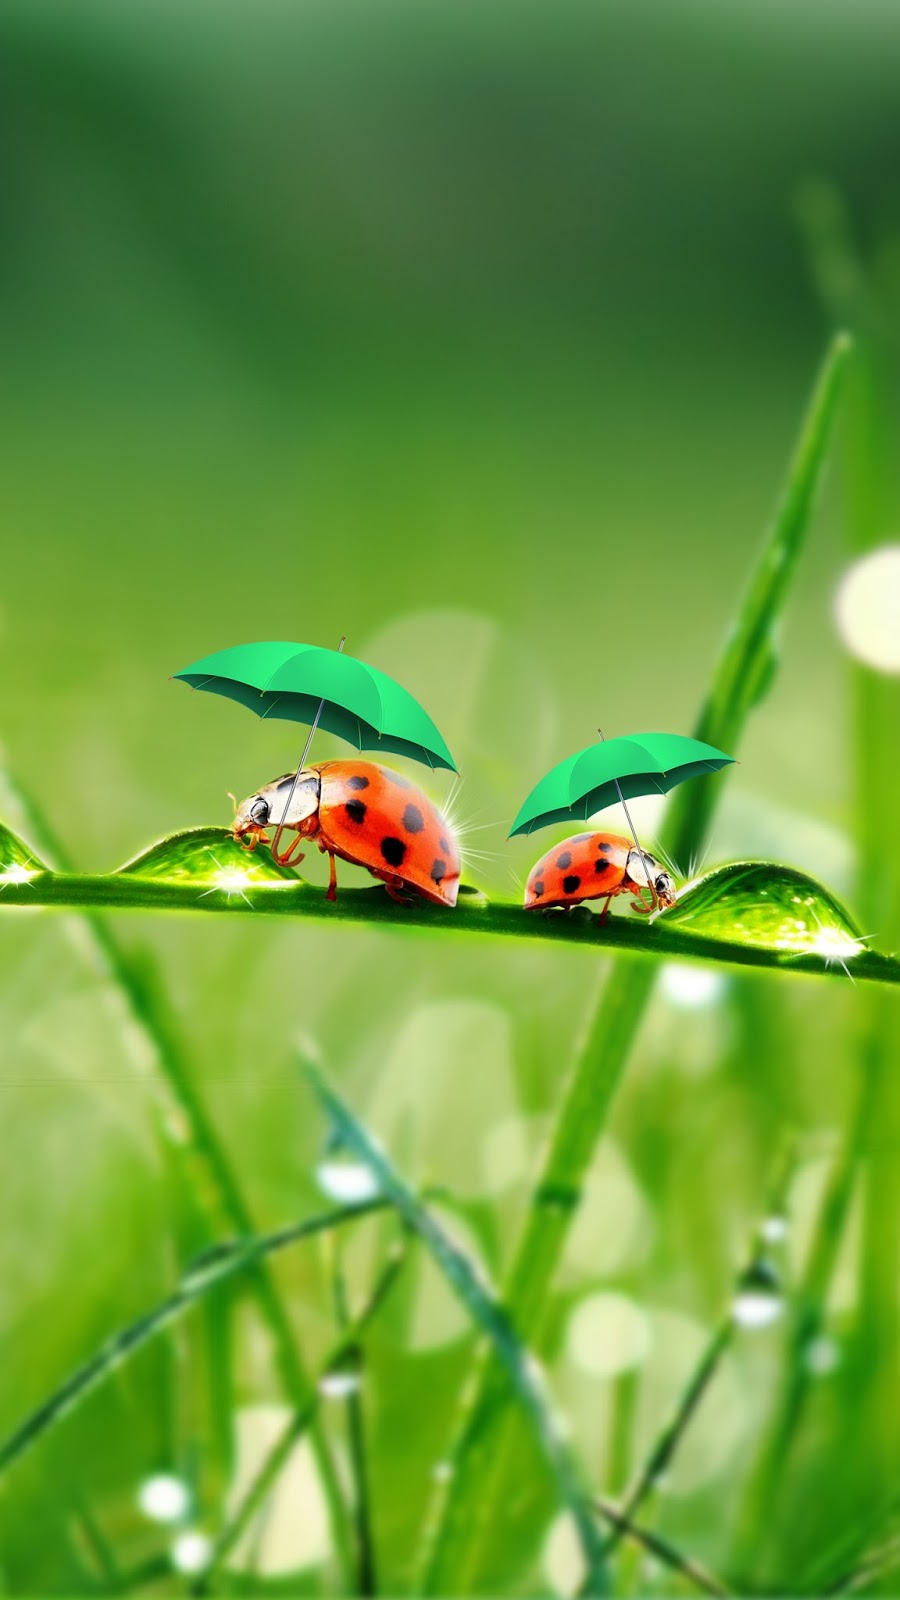 Wallpaper download j7 - Ladybug Wallpaper Samsung Galaxy J7 Click Here To Download